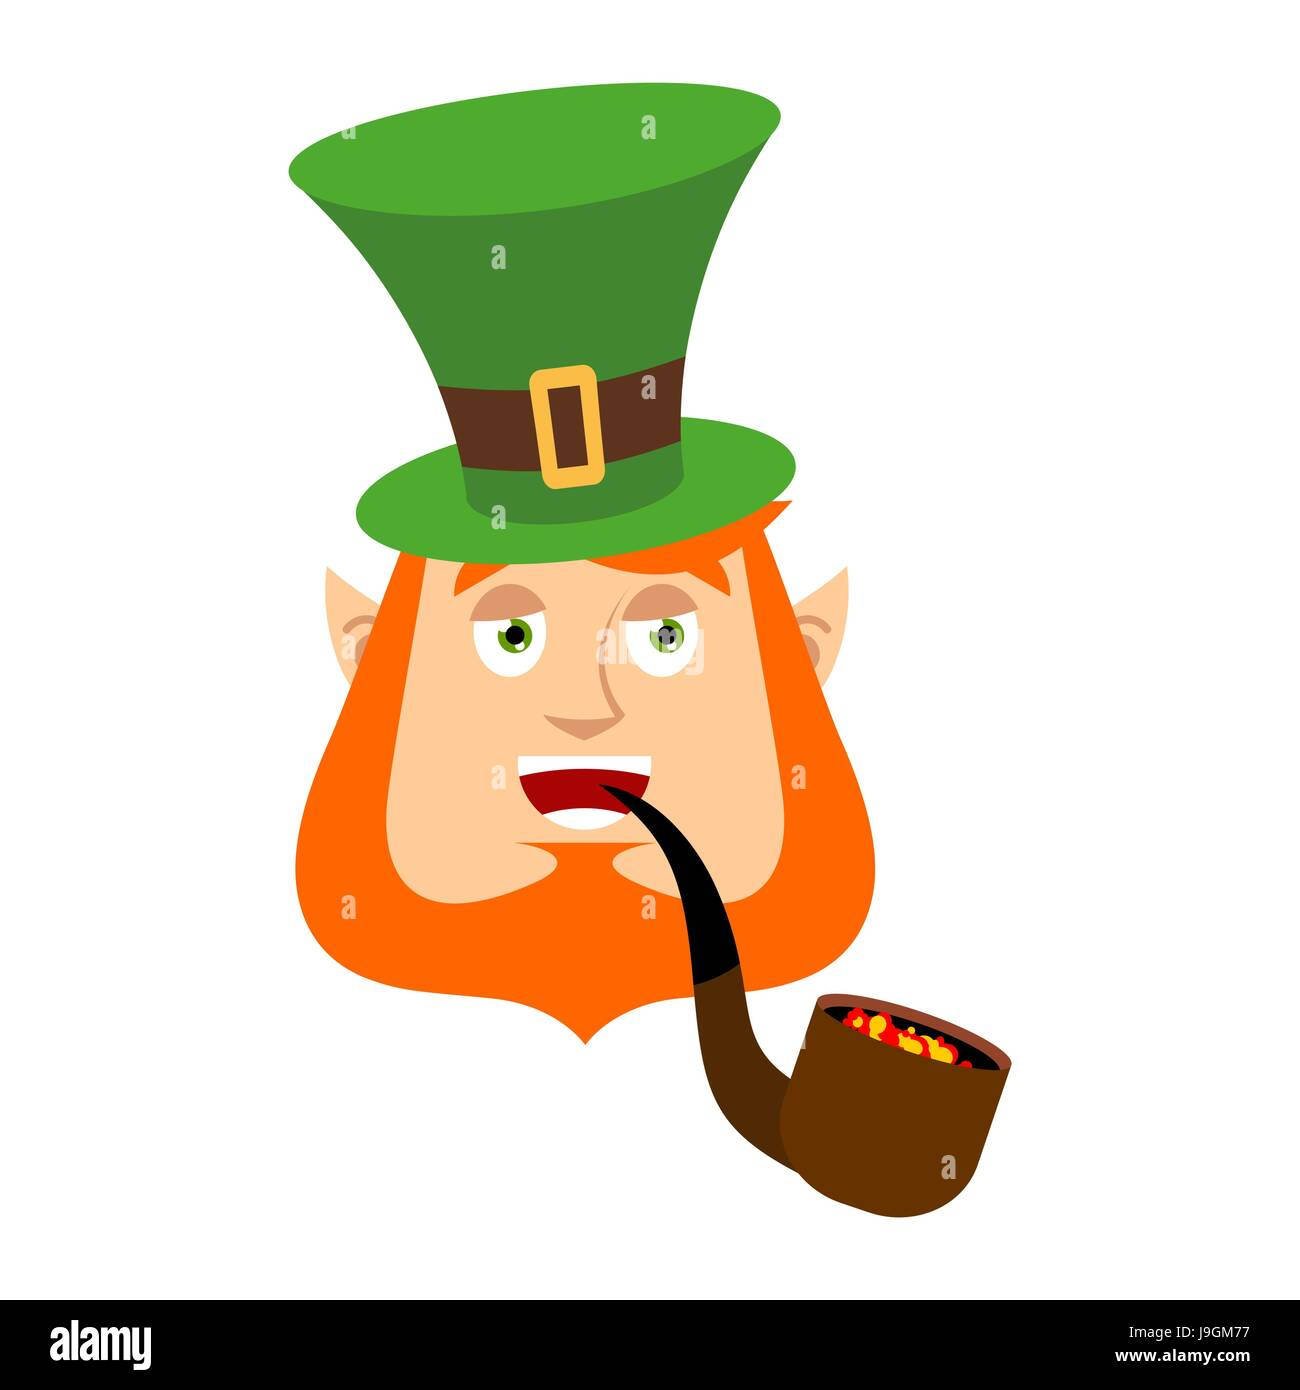 3797d31a34a0a Dwarf with red beard merry Emoji. Irish elf emotions. St.Patrick  s Day.  Holiday in Ireland